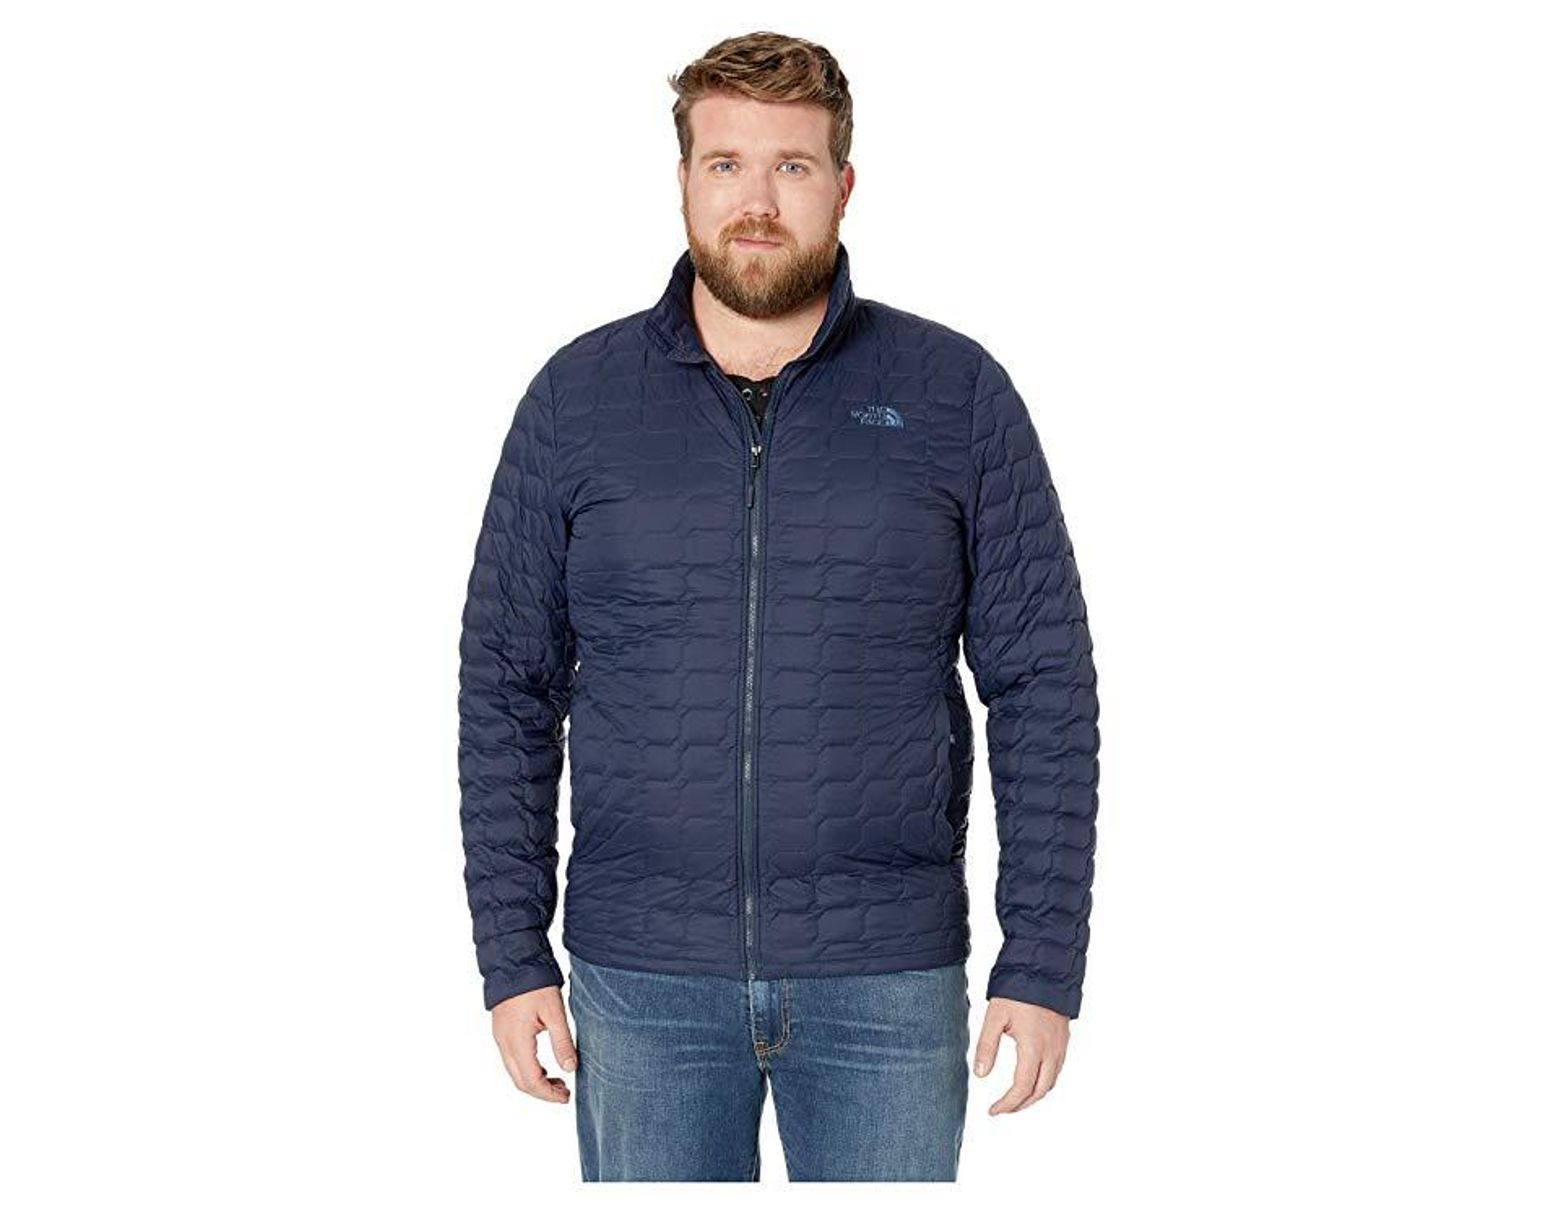 721a55d9 The North Face Thermoball Jacket - Tall (urban Navy Matte 1) Coat in Blue  for Men - Save 45% - Lyst